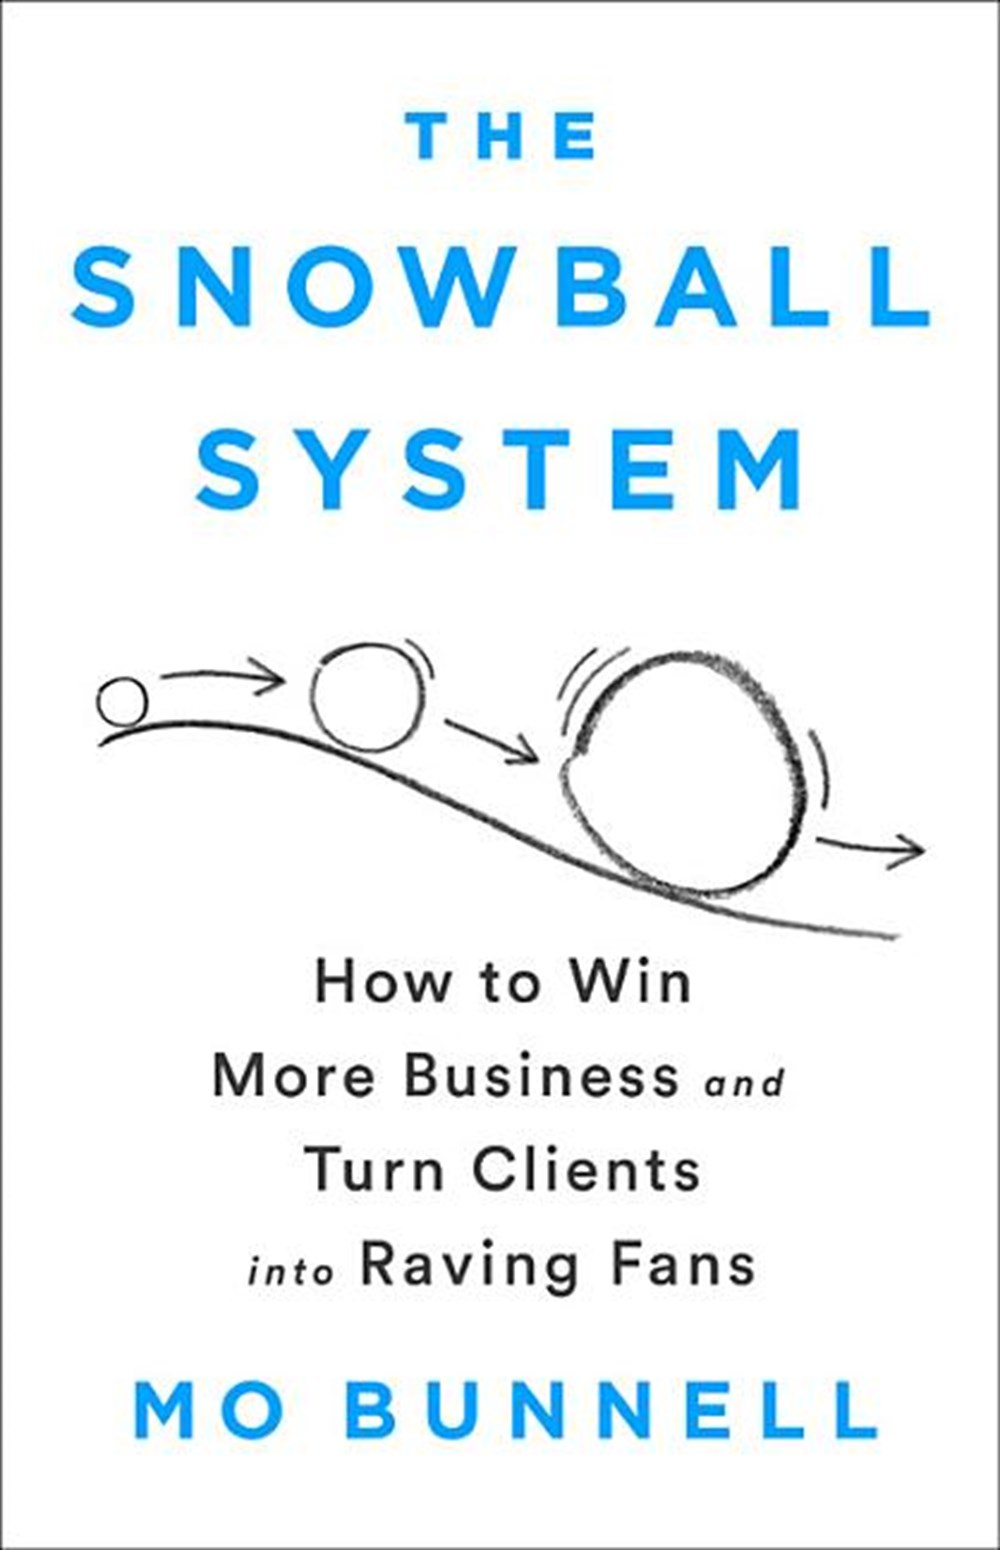 Snowball System How to Win More Business and Turn Clients Into Raving Fans